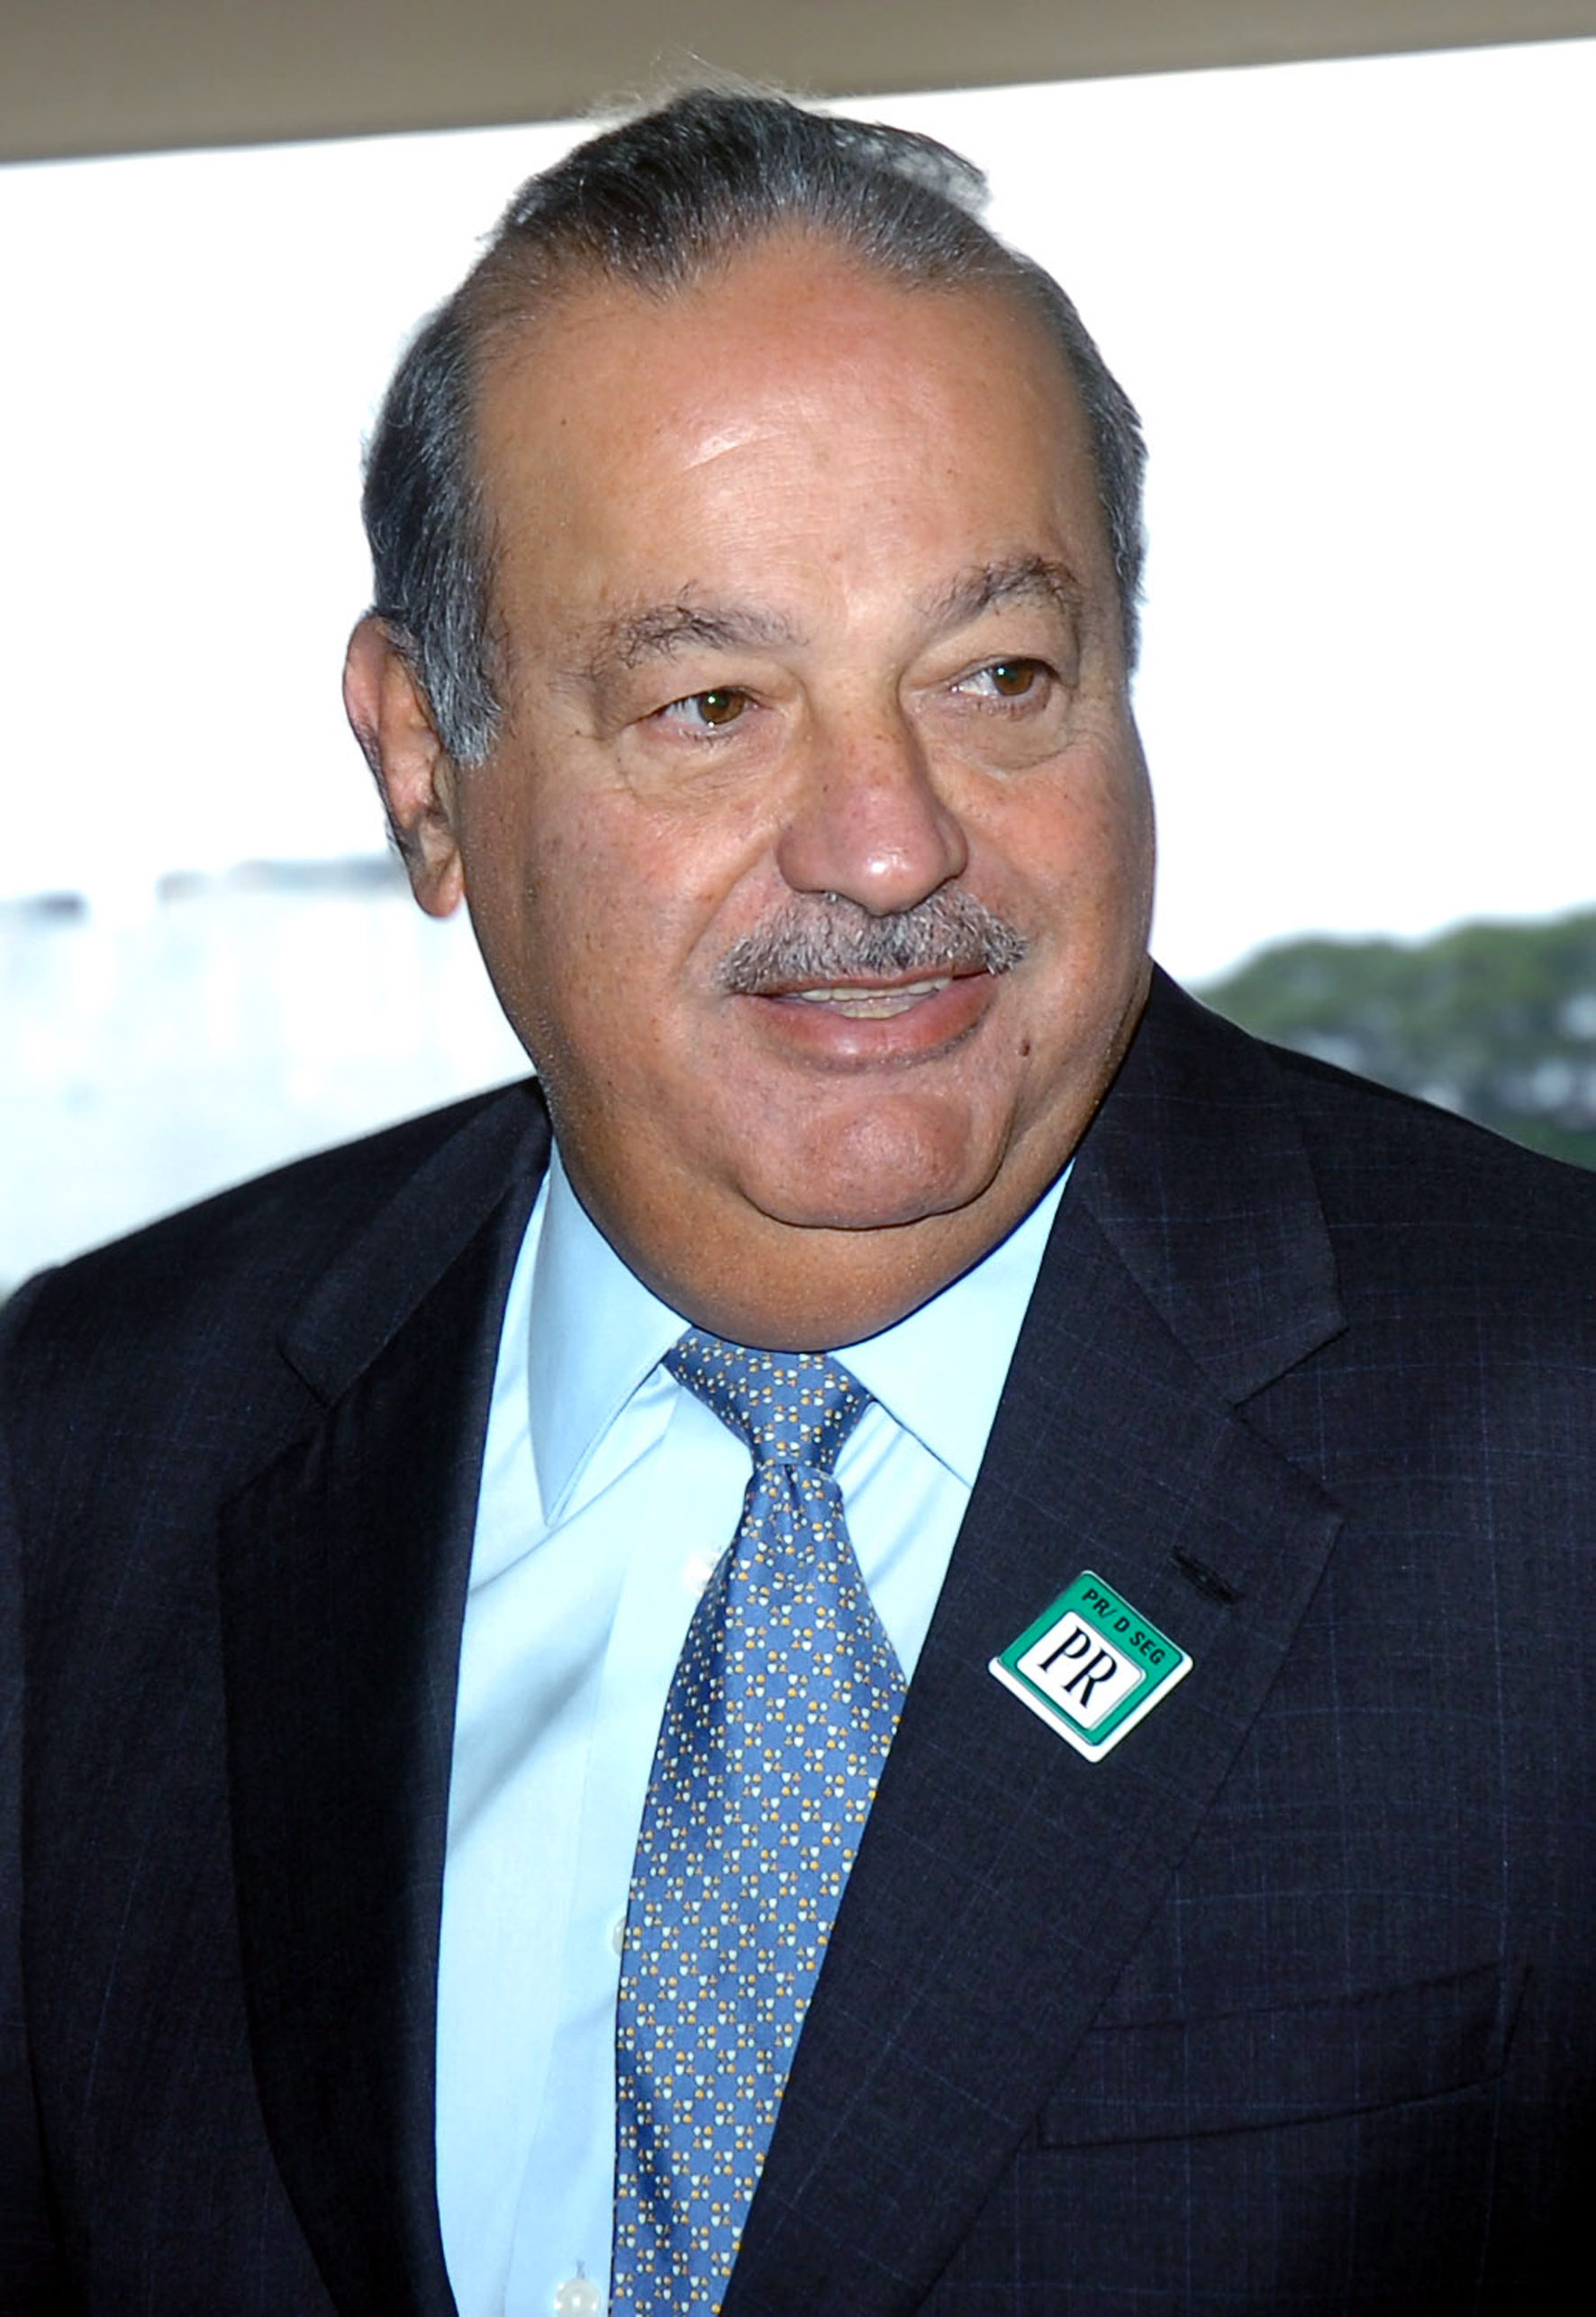 Carlos Slim Helu Net Worth